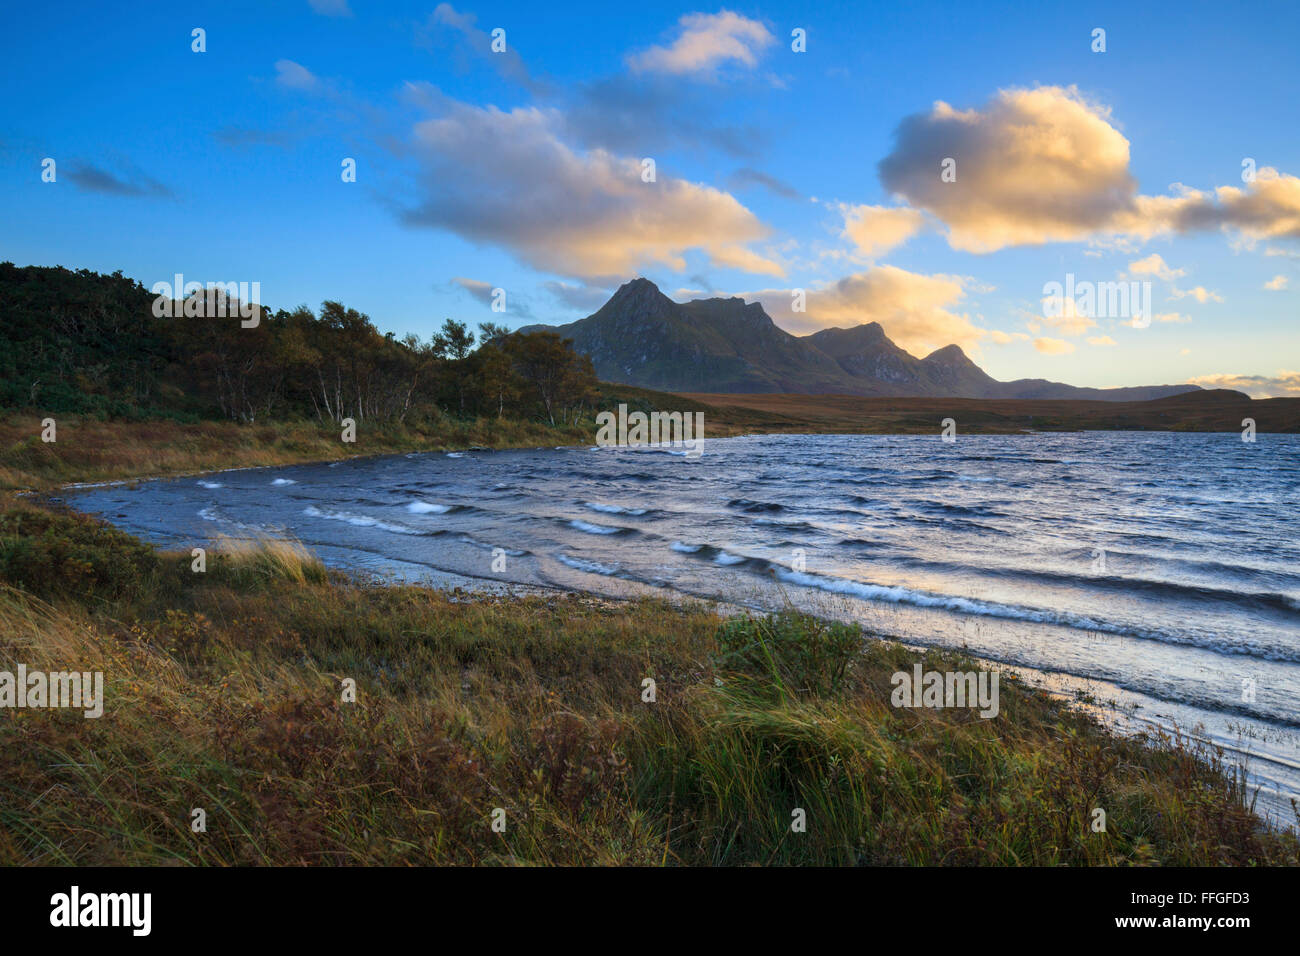 Waves on Loch Hakel, with Ben Loyal in the distance. - Stock Image